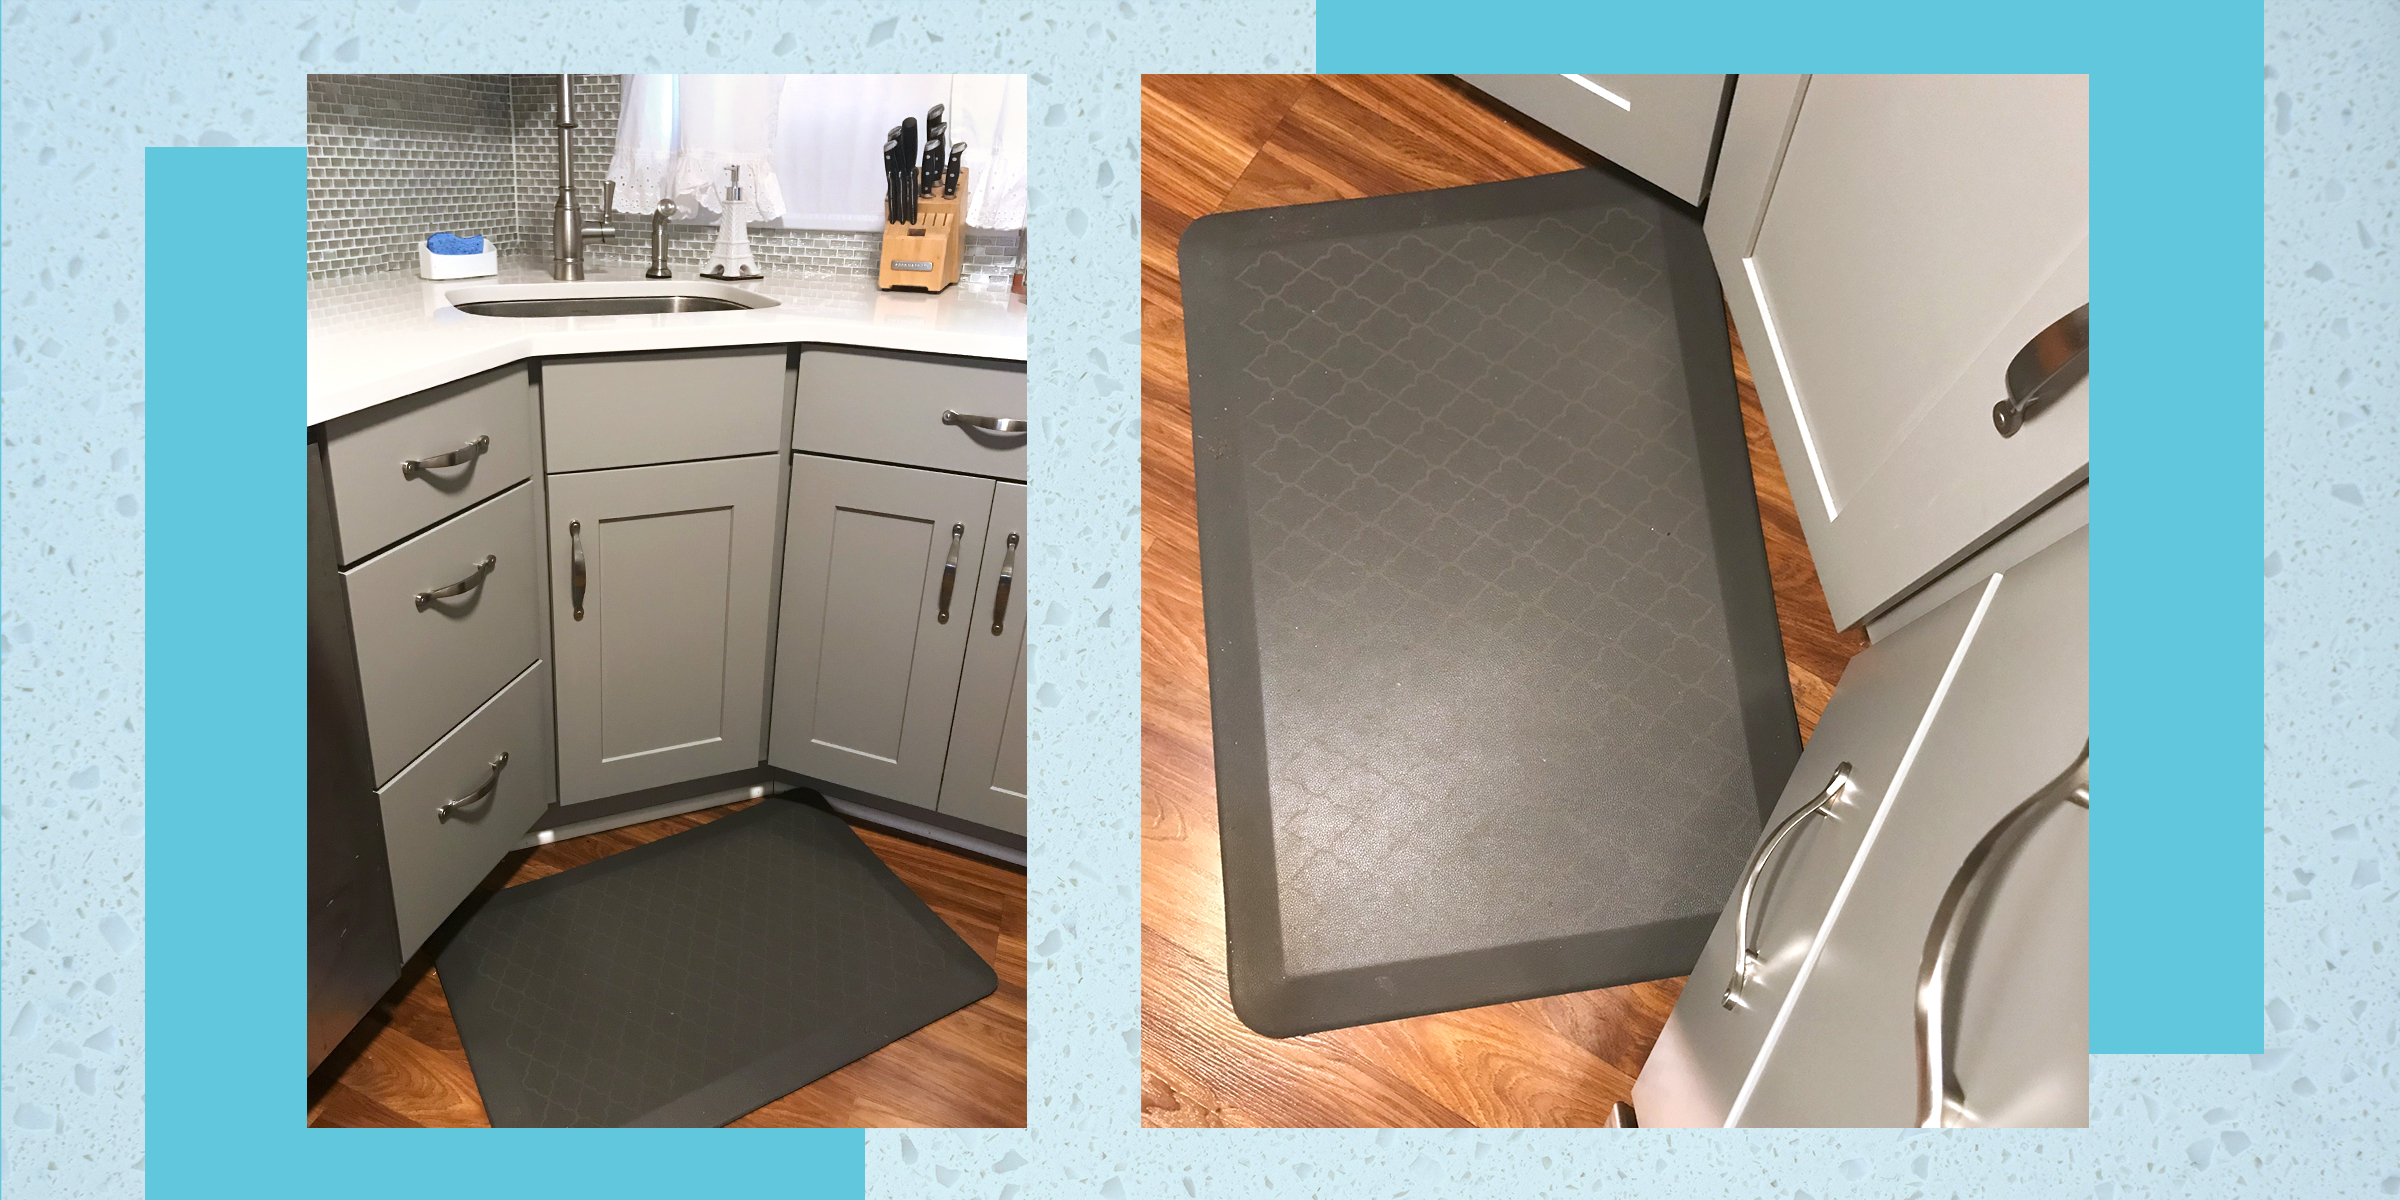 5 Kitchen Comfort Mats To Make Cleaning